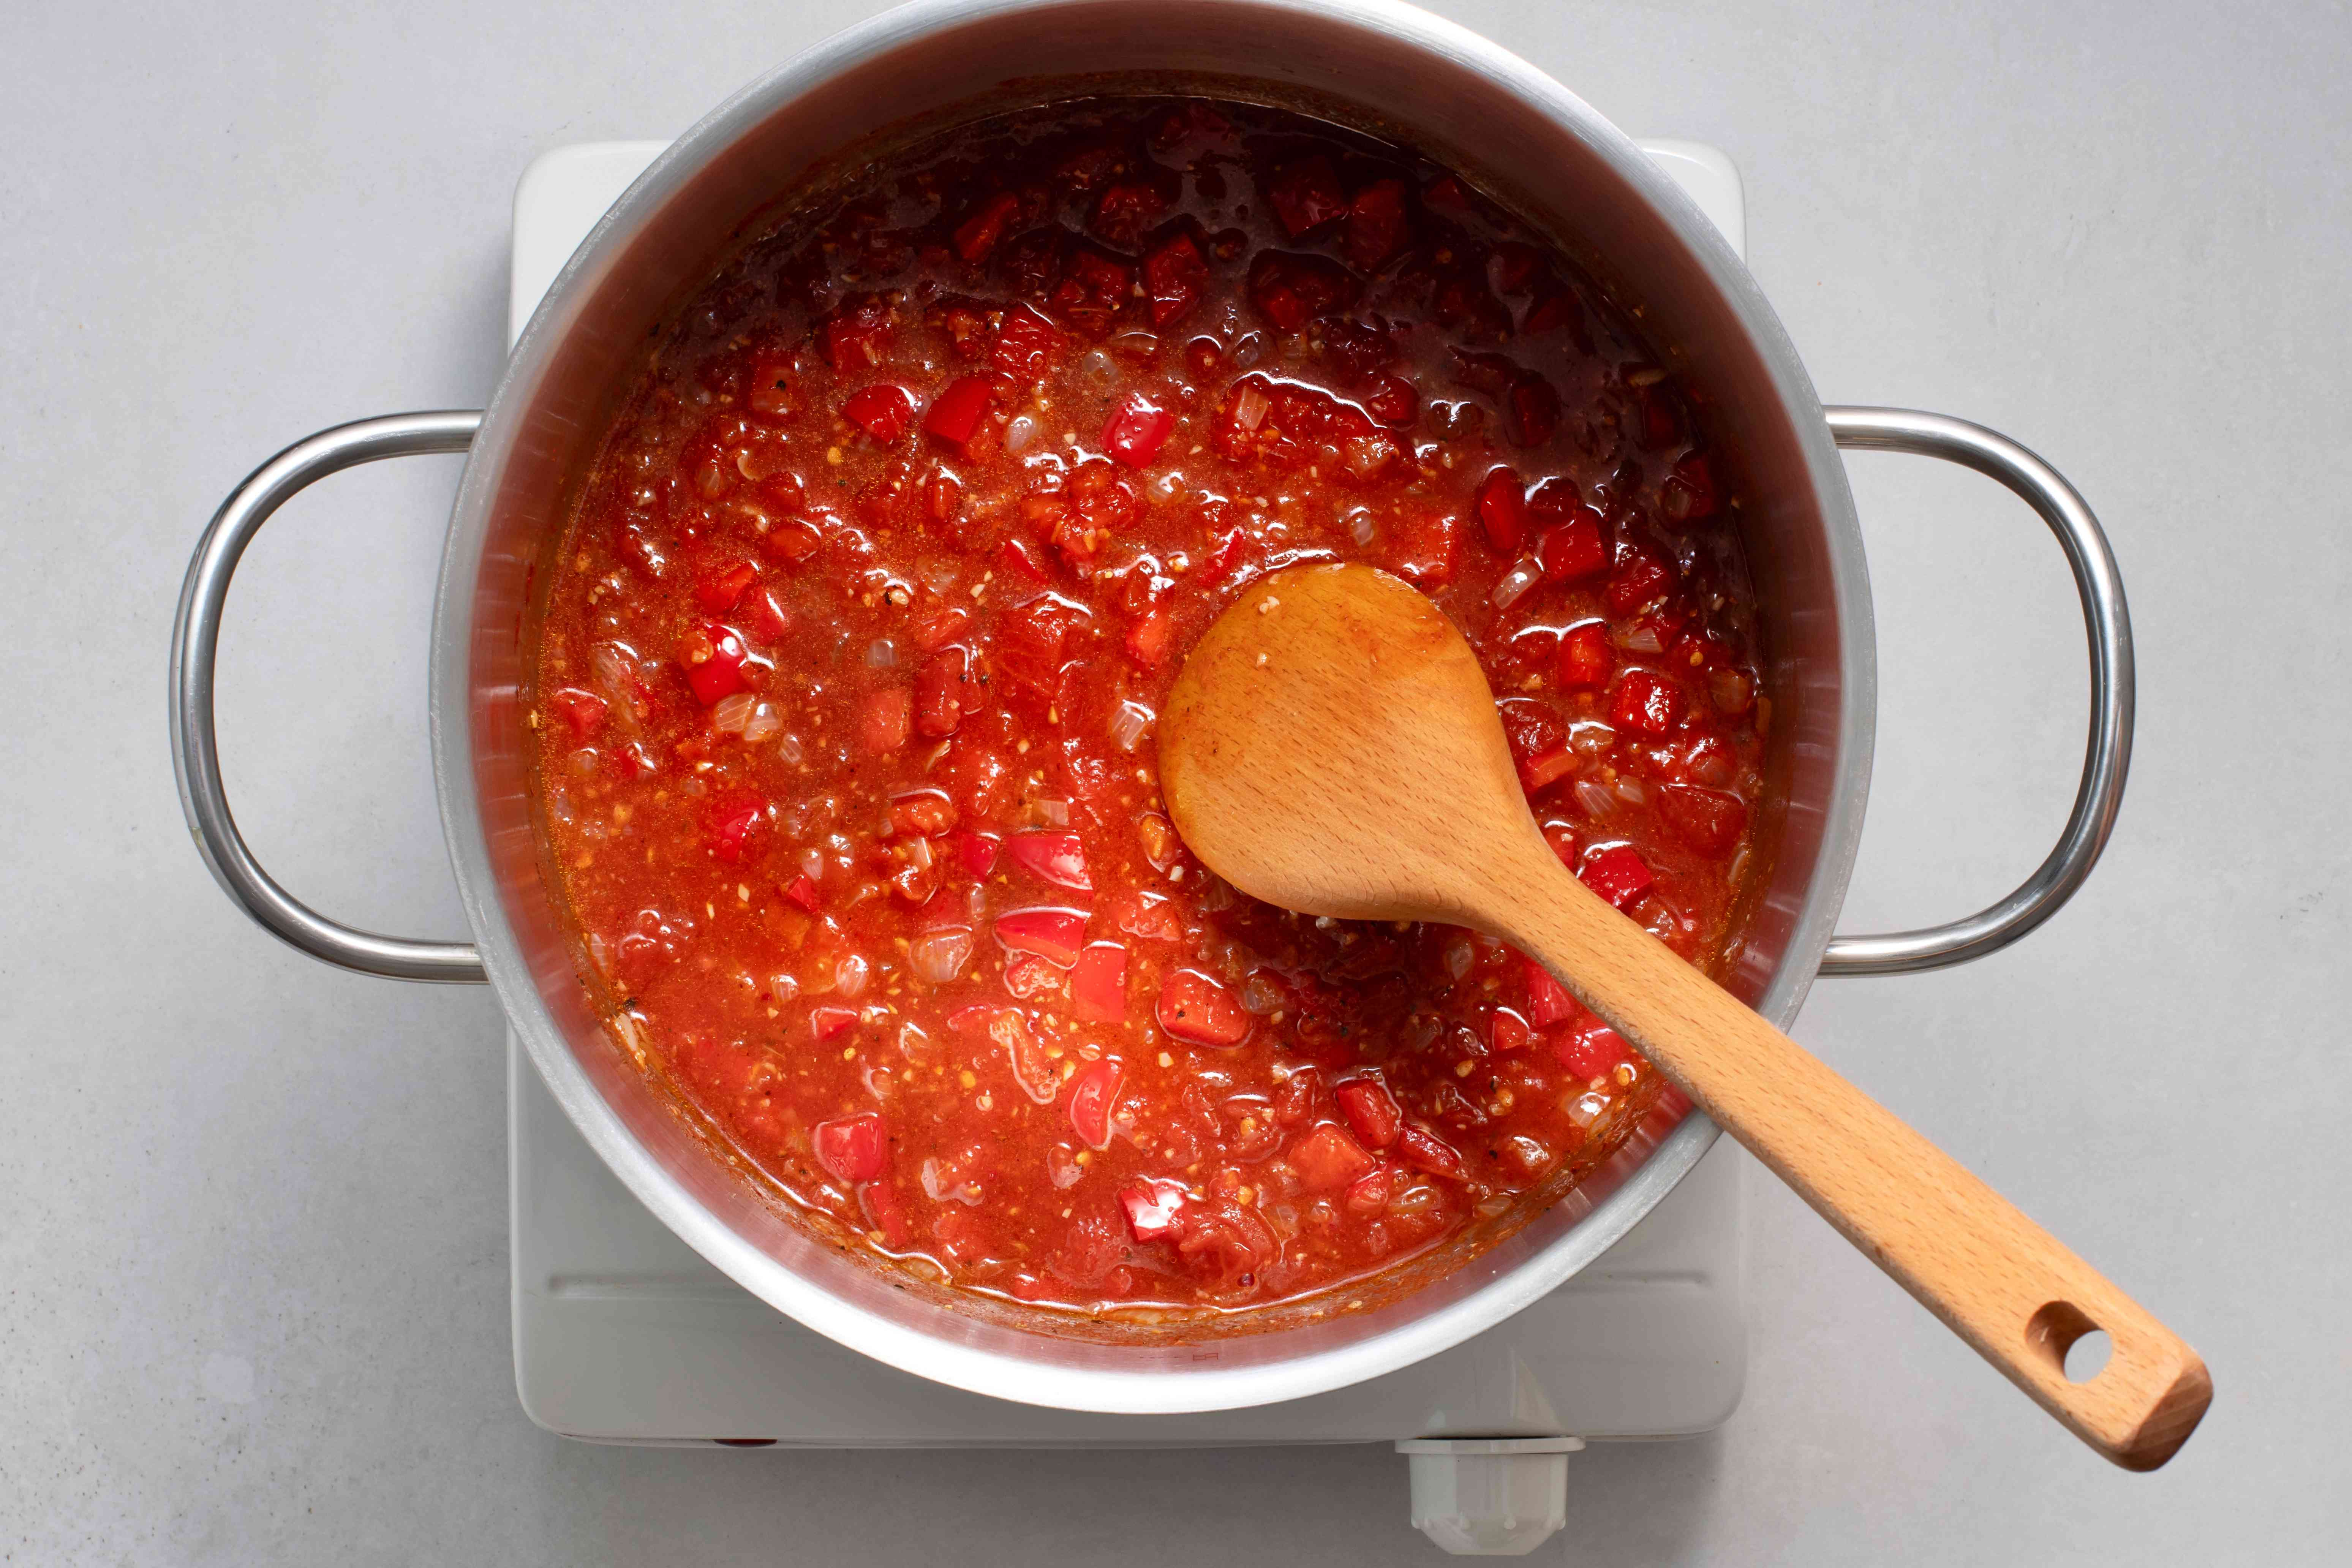 Undrained tomatoes, vegetable broth, and the chili powder in pan